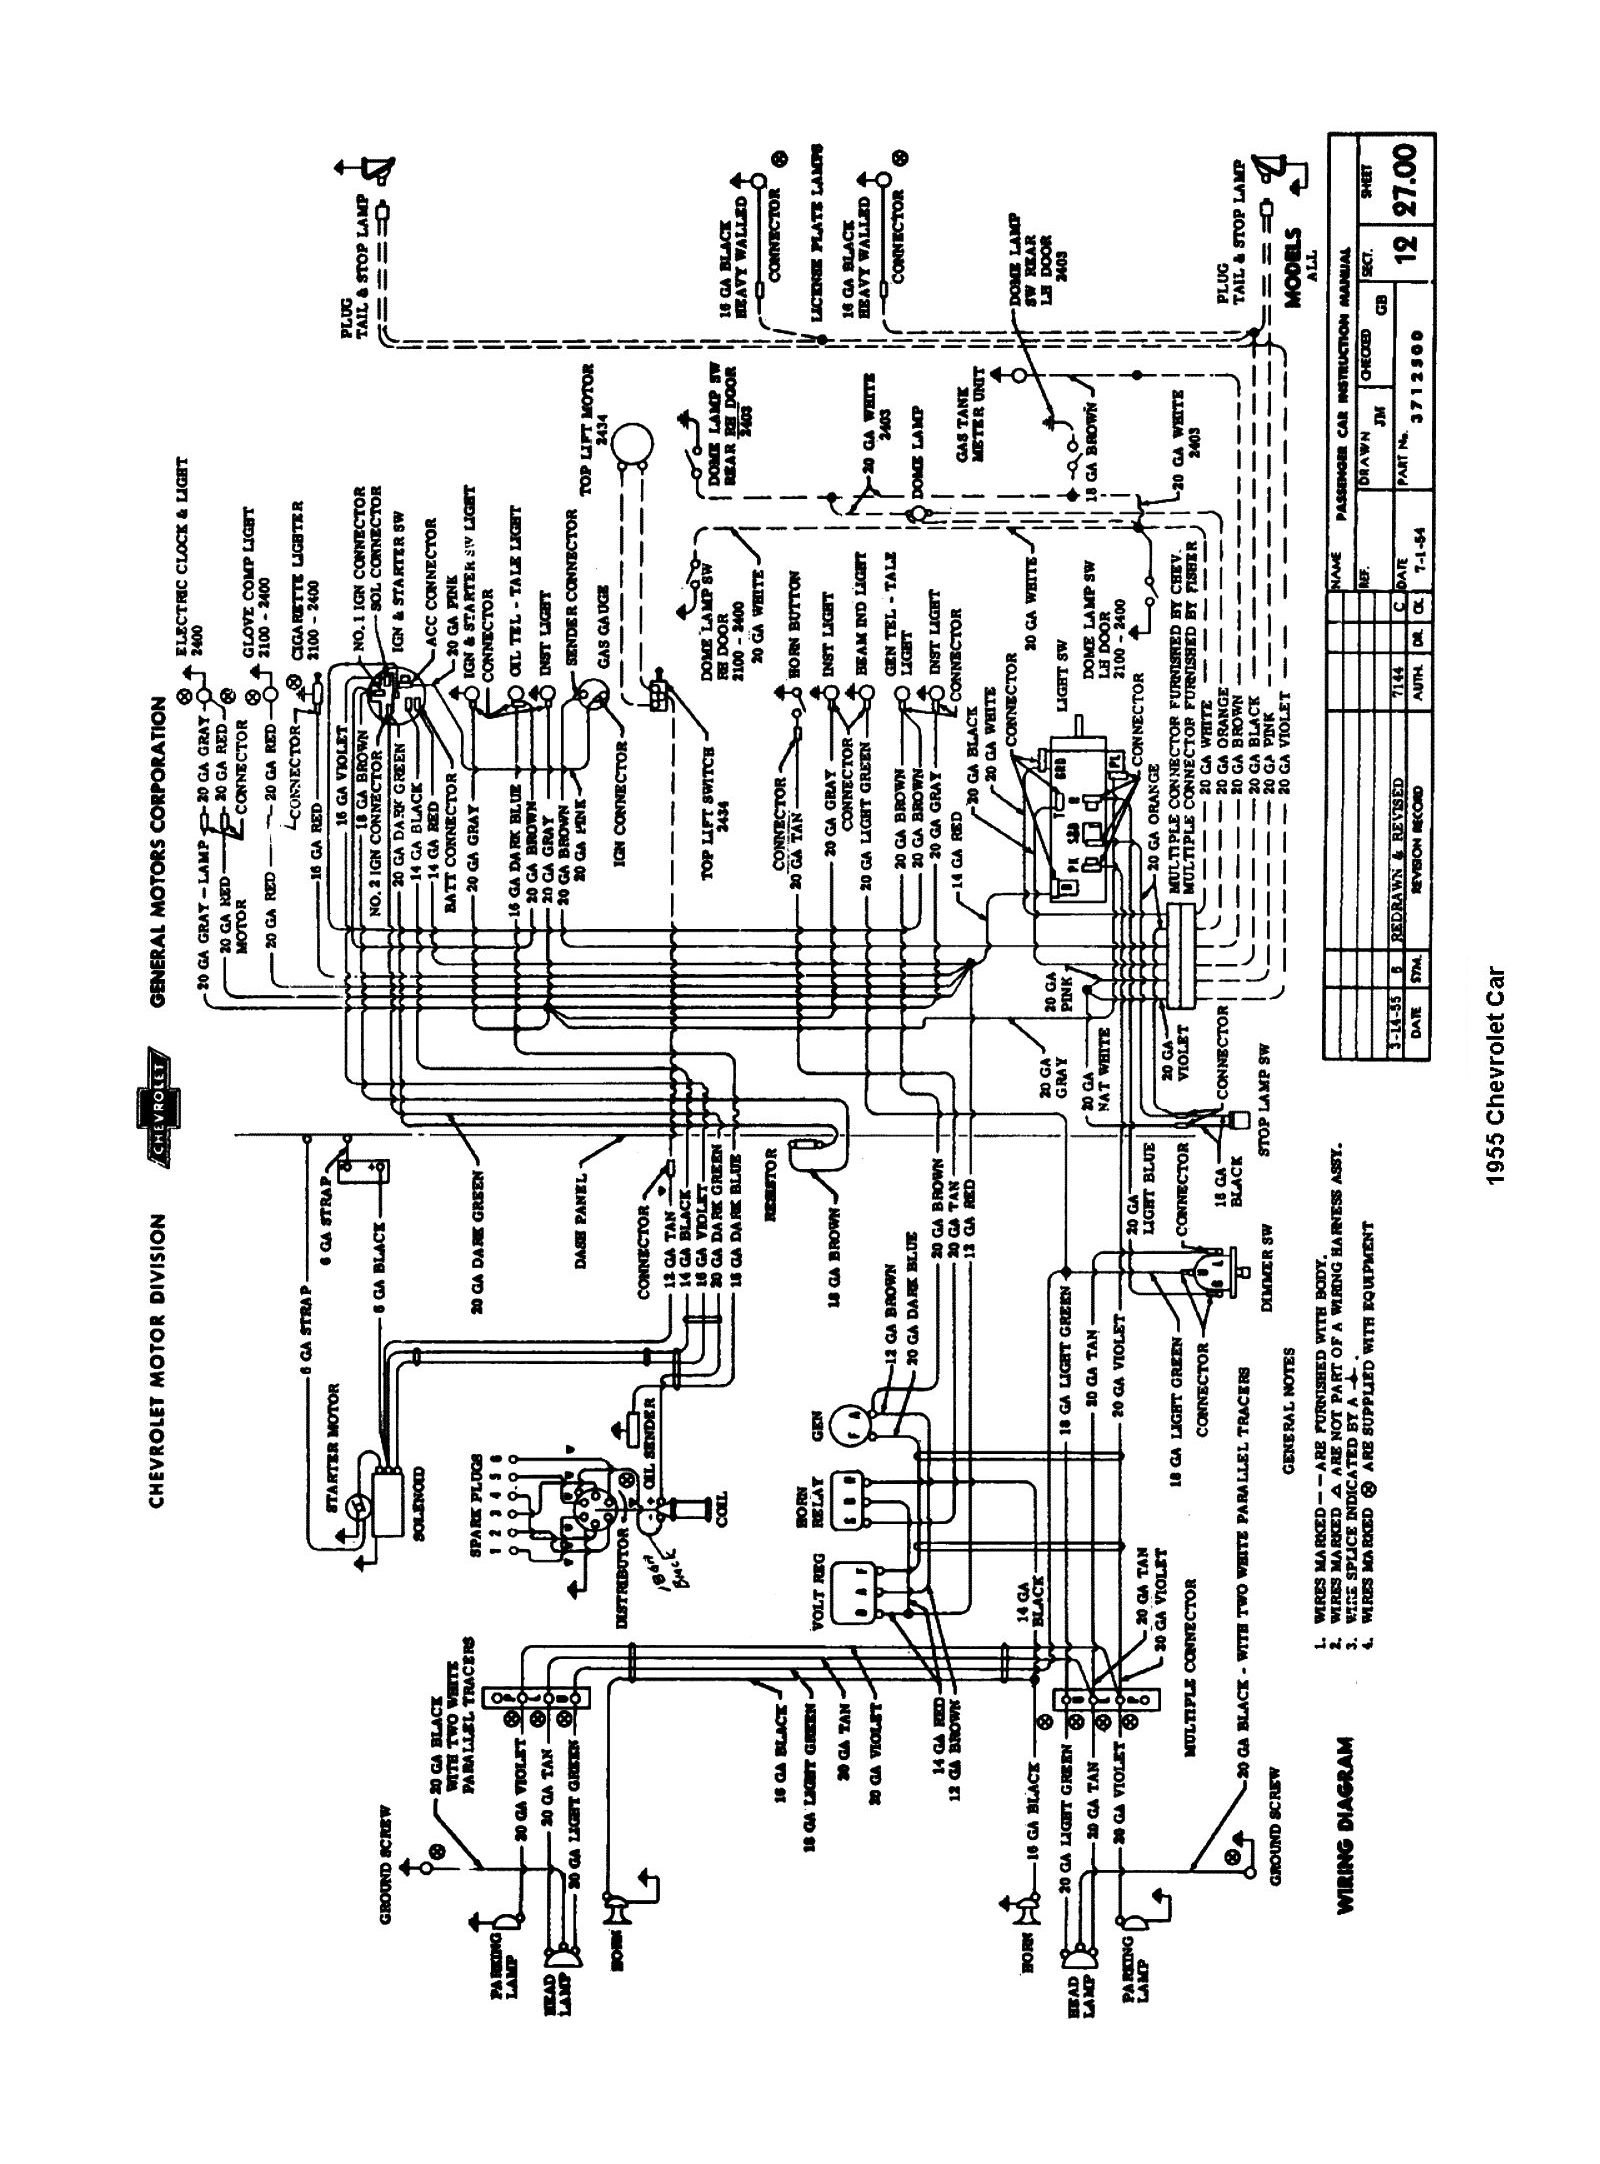 1960 oldsmobile wiring diagram